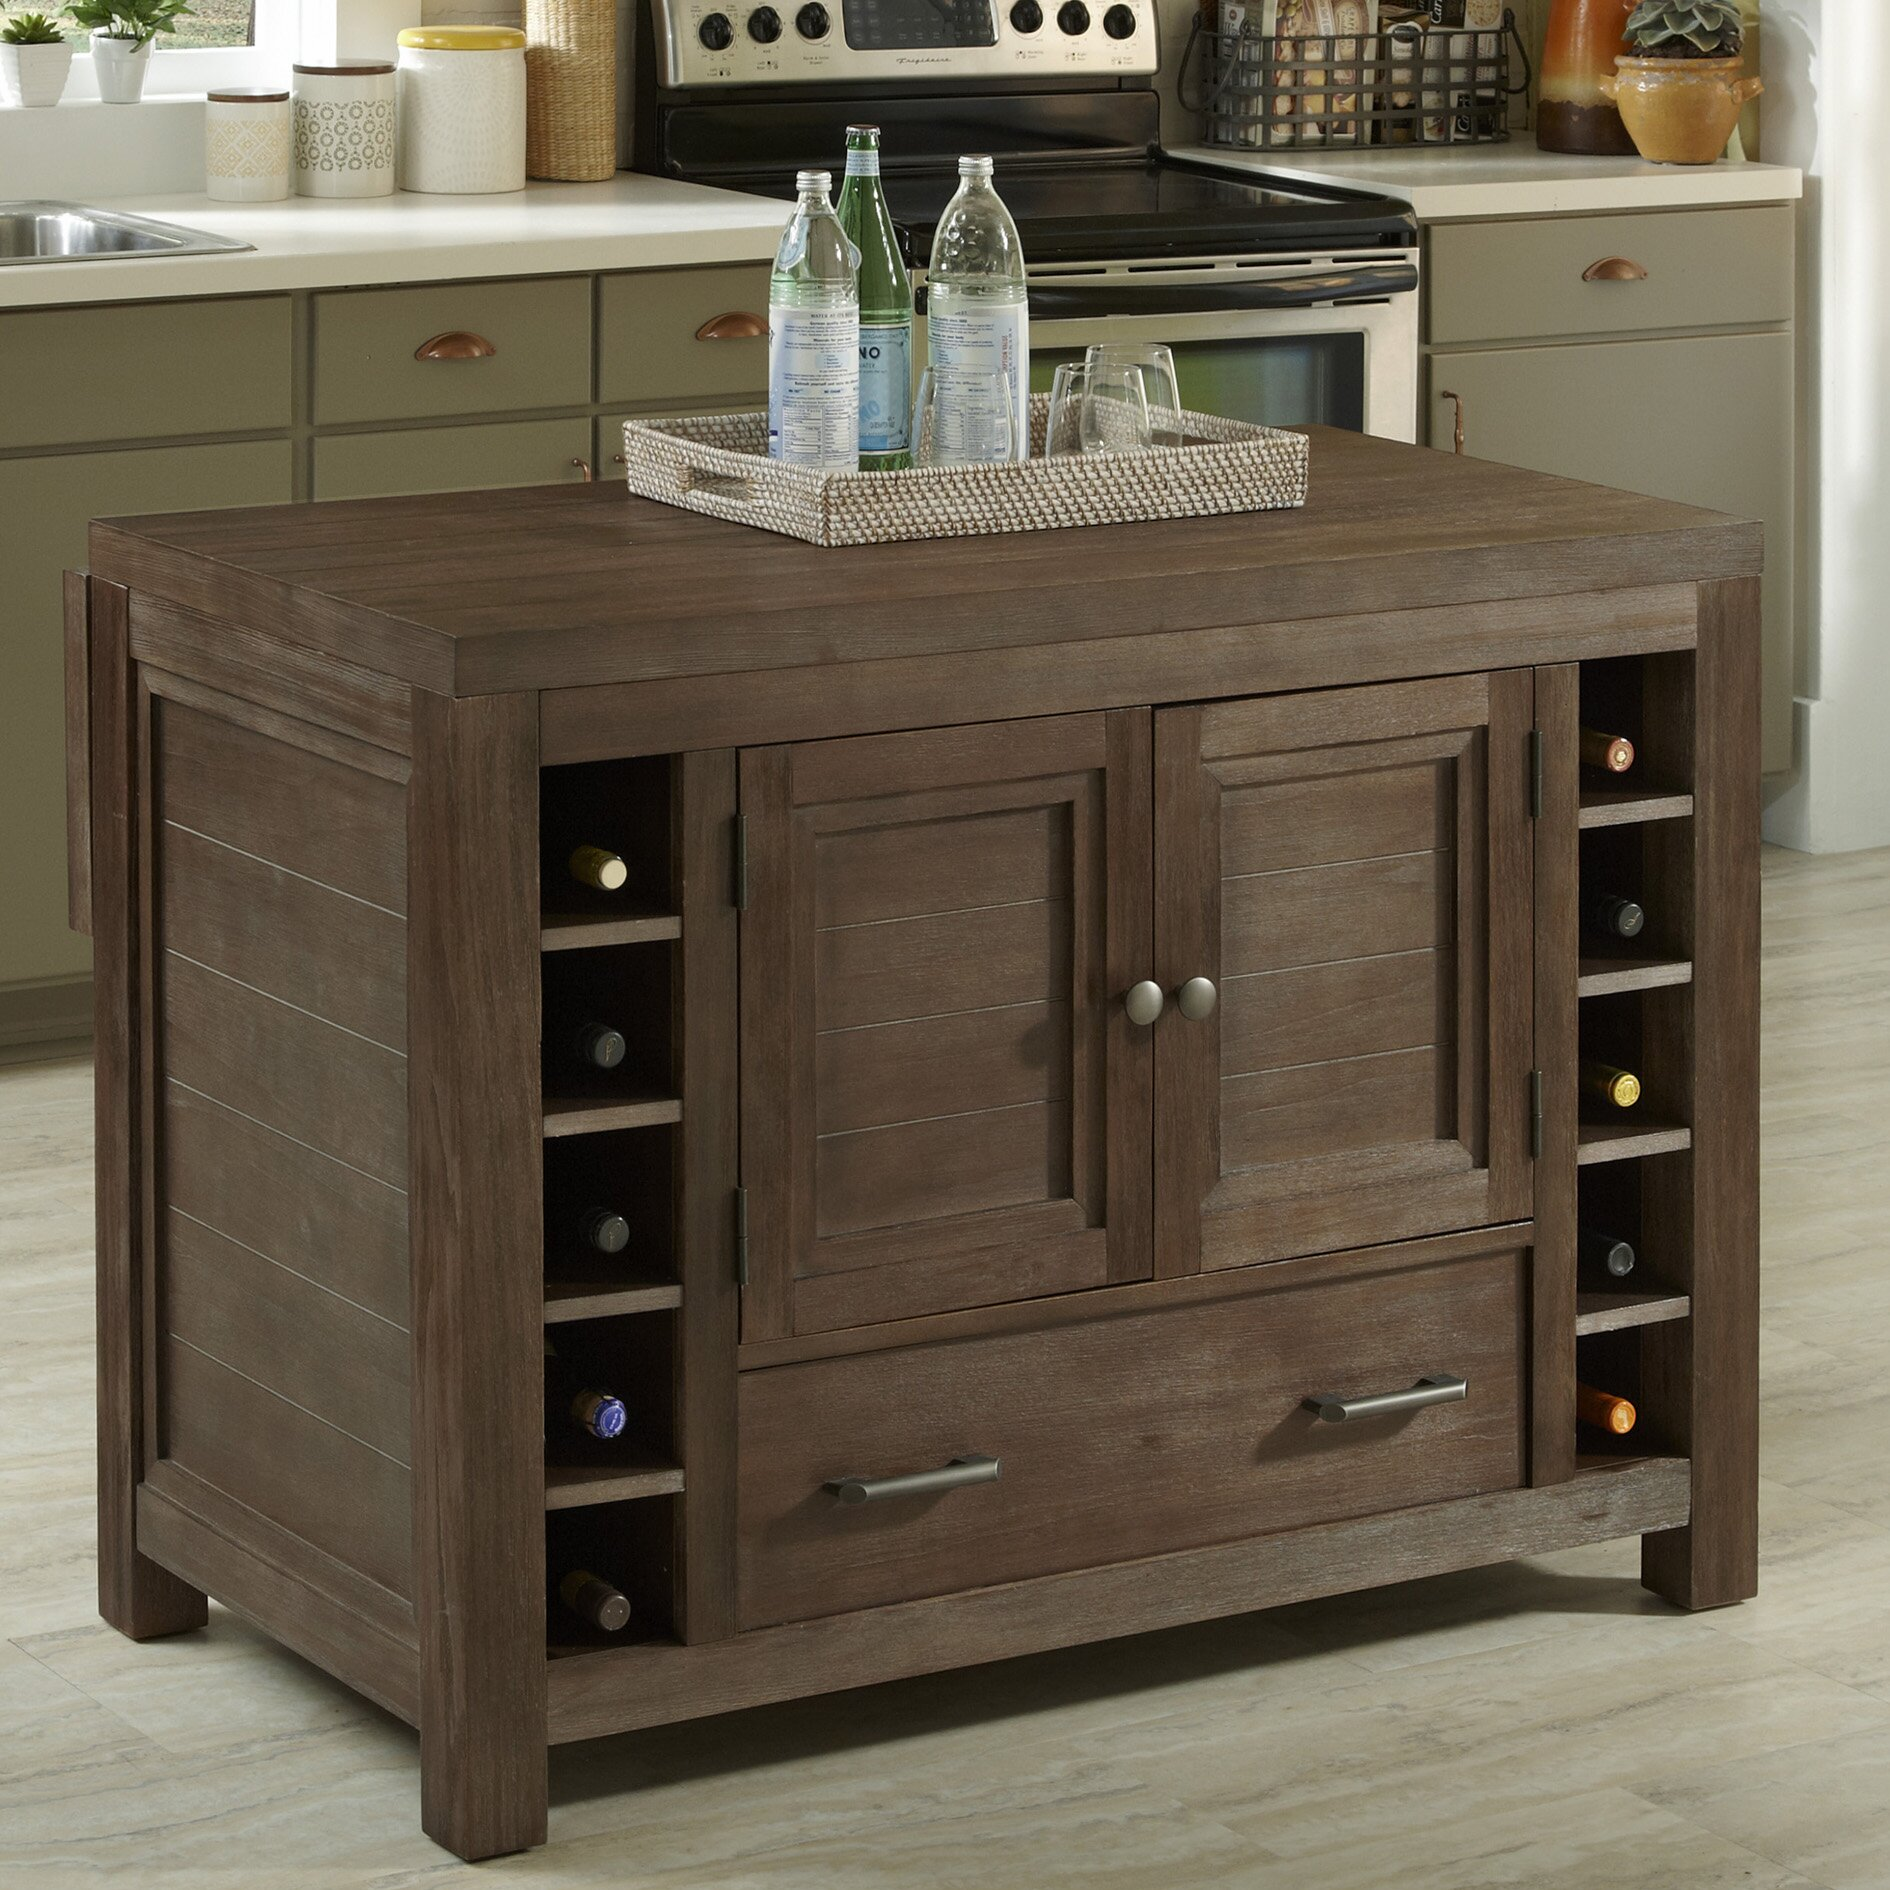 Home Styles Kitchen Island: Home Styles Barnside Kitchen Island & Reviews